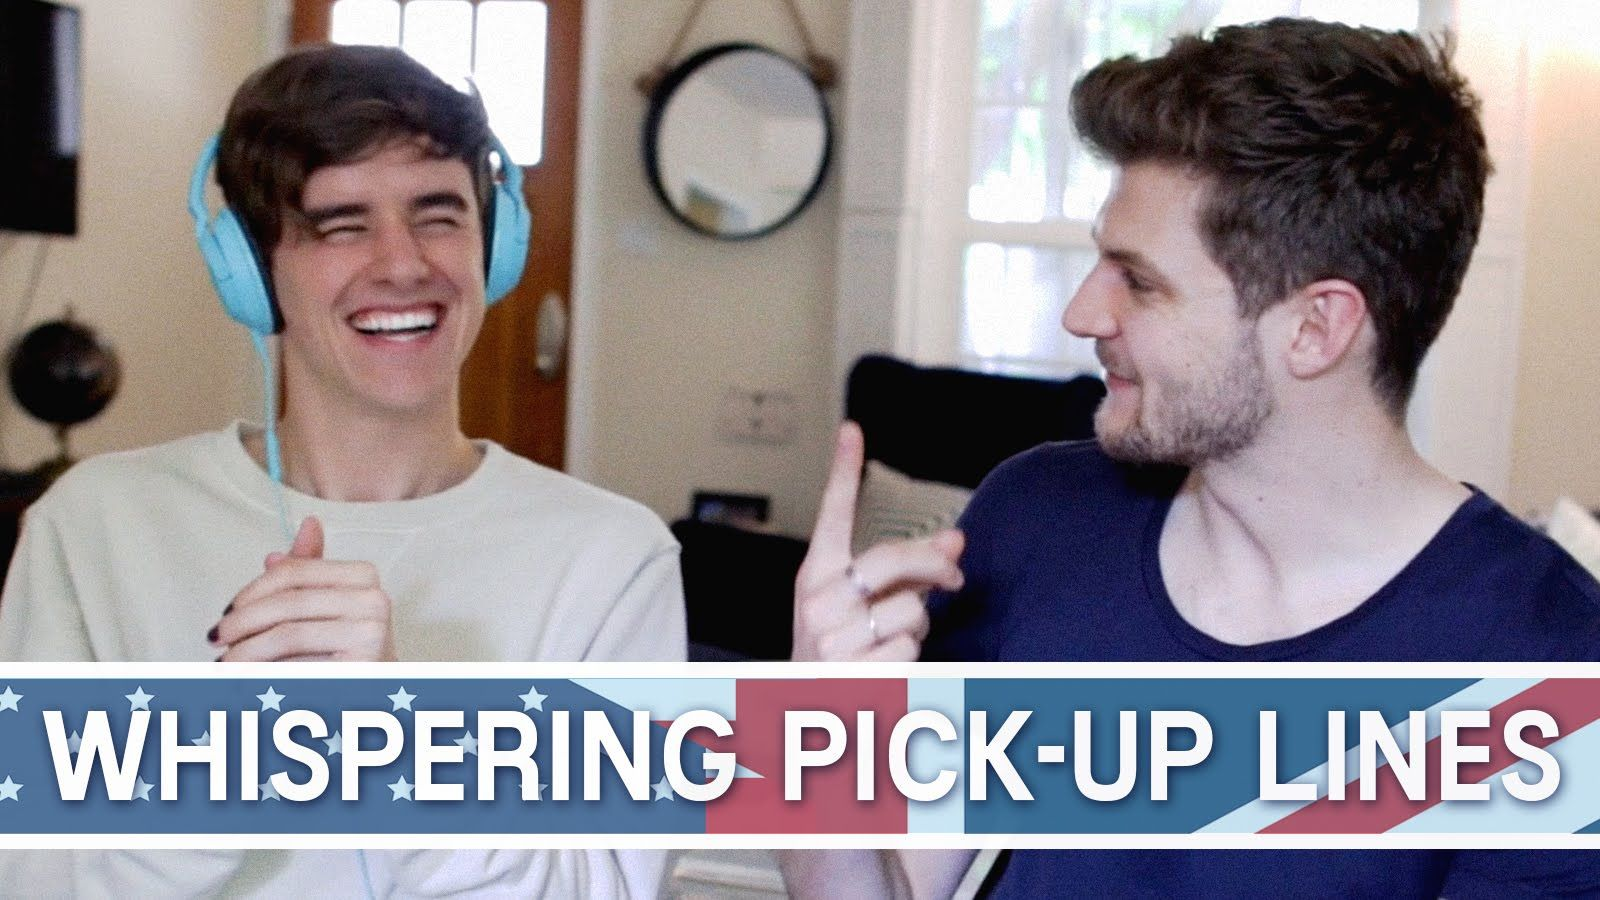 Whispering British vs American Pick-Up Lines